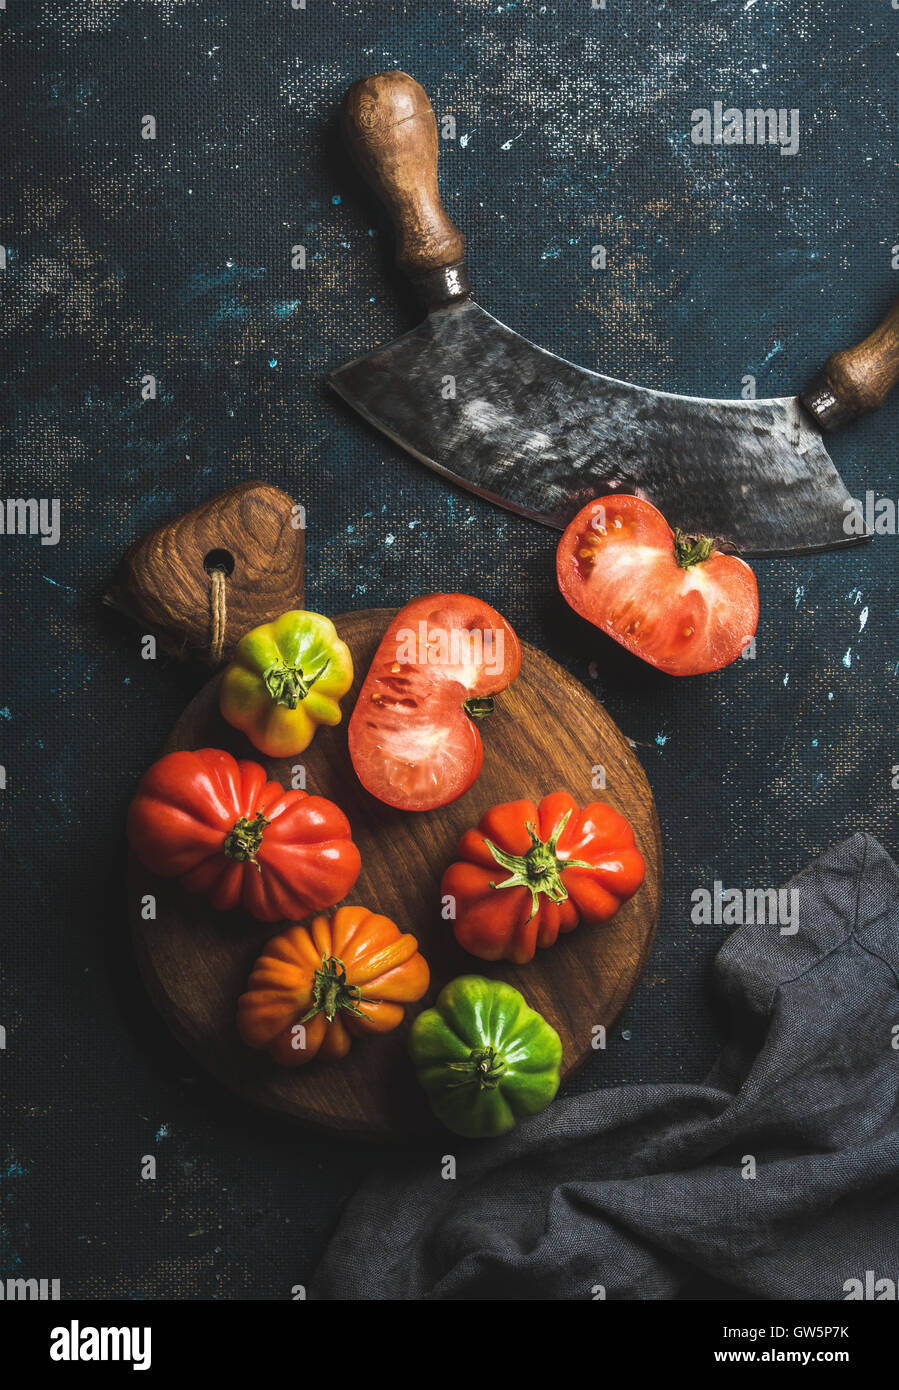 Fresh colorful ripe heirloom tomatoes on wooden board - Stock Image